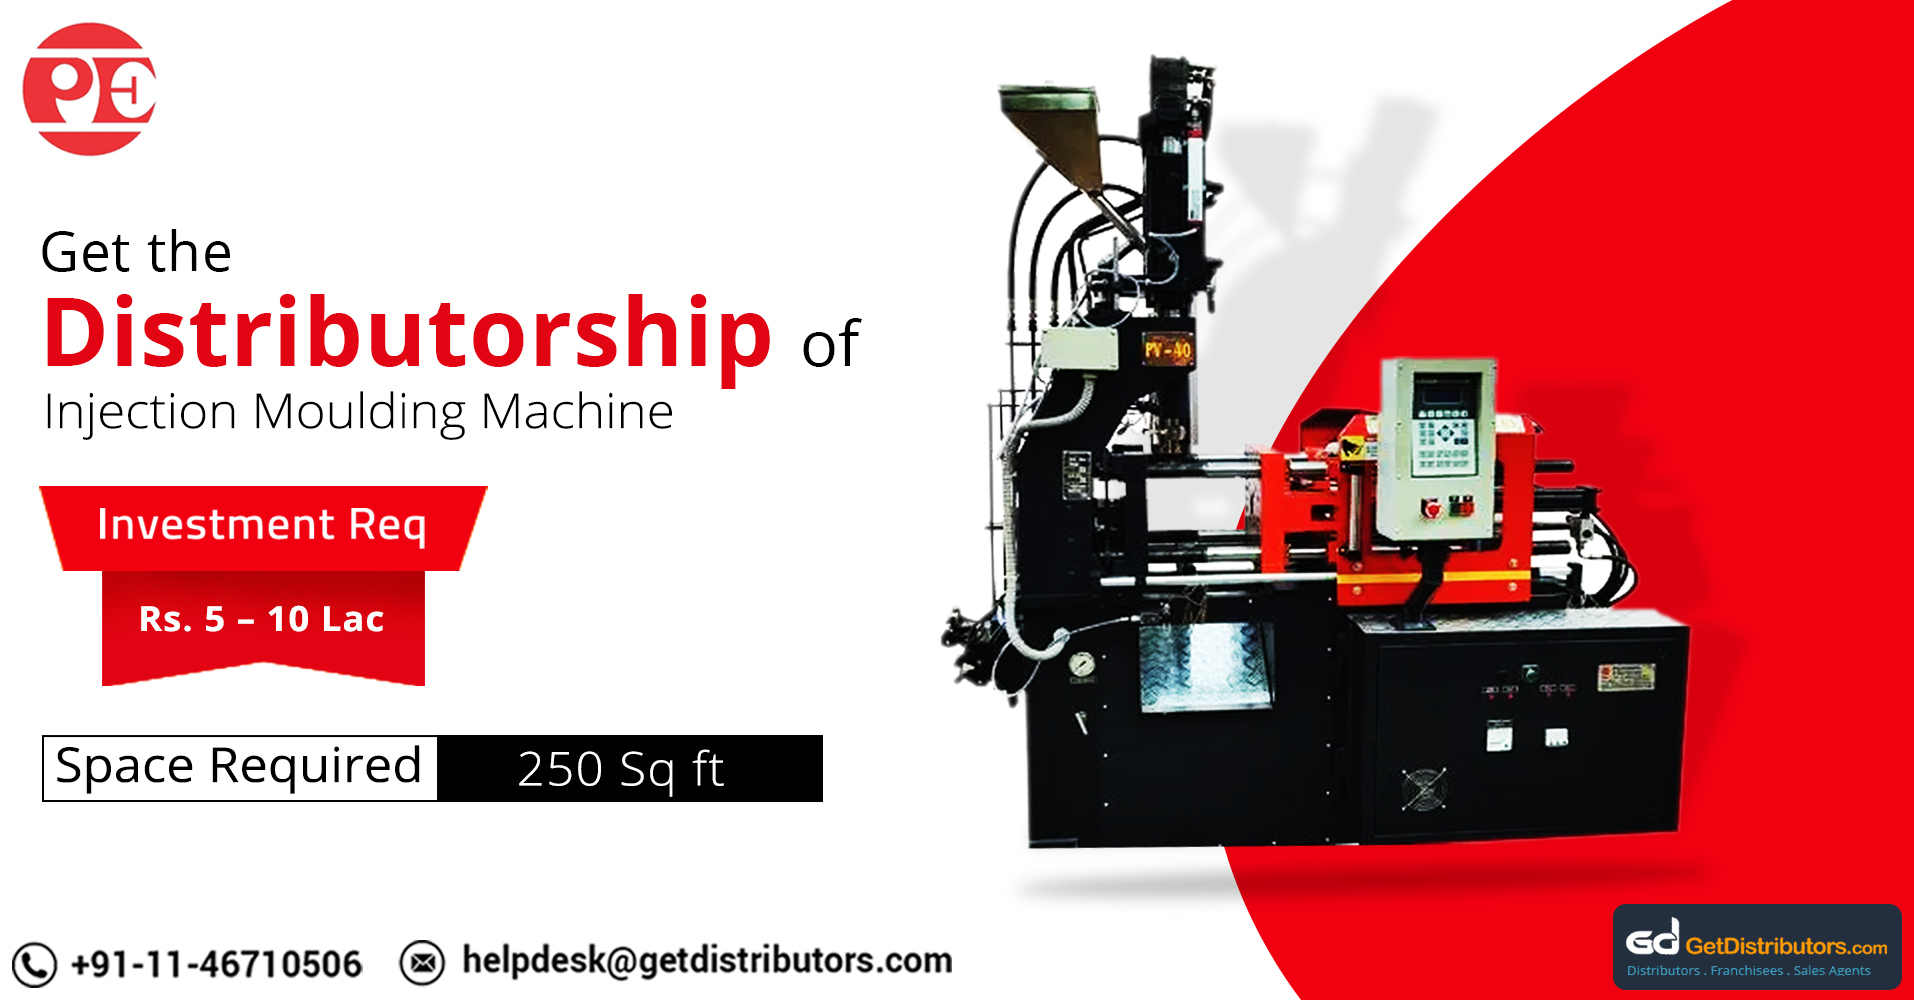 Sturdy, Reliable And High Performing Injection Molding Machine For Distribution